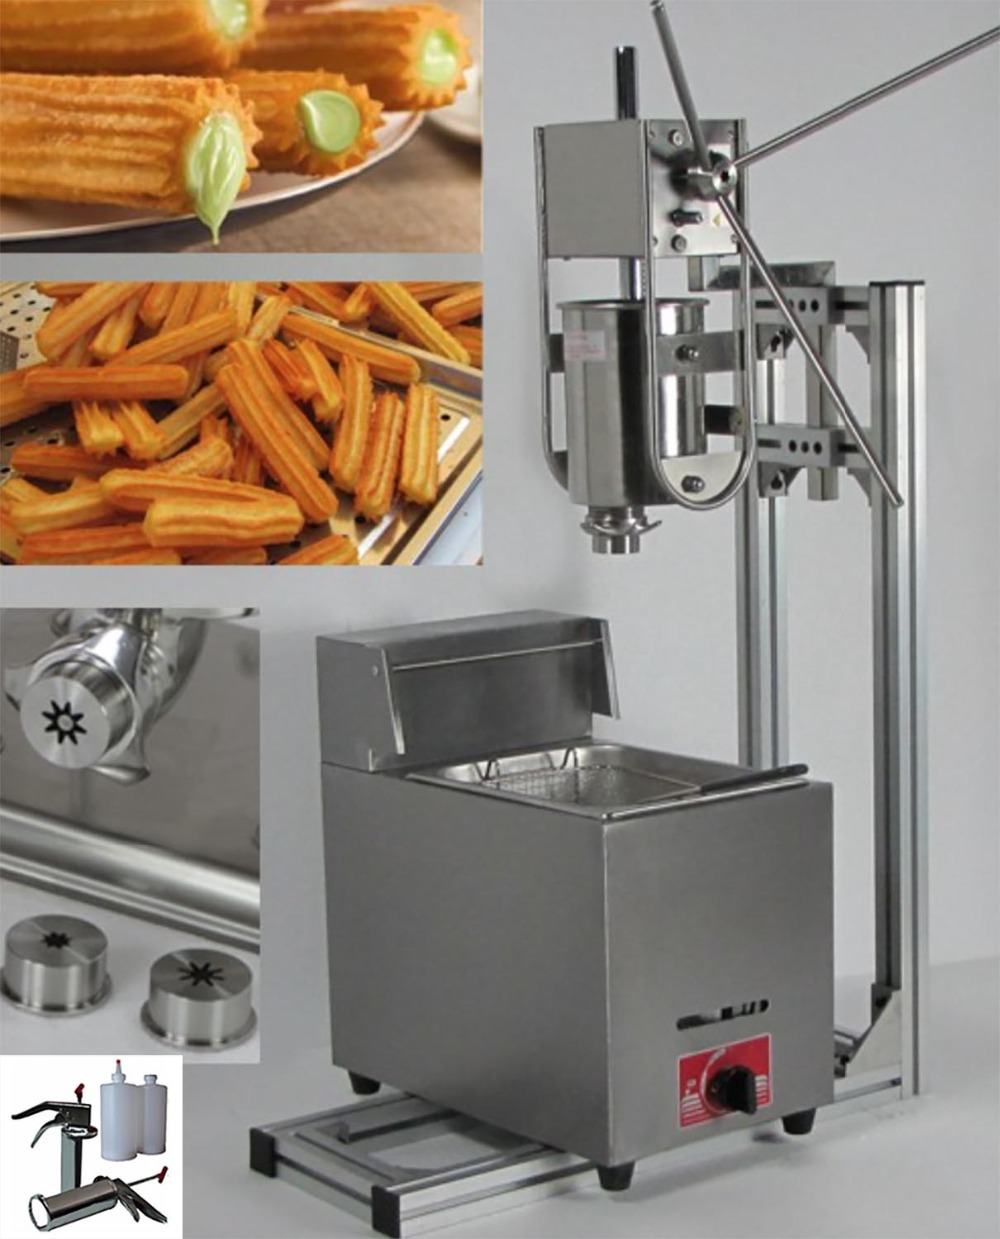 4 in 1 3L Manual Churros Maker + Working Stand + 6L Gas Fryer + 700ml Churros Filler<br><br>Aliexpress